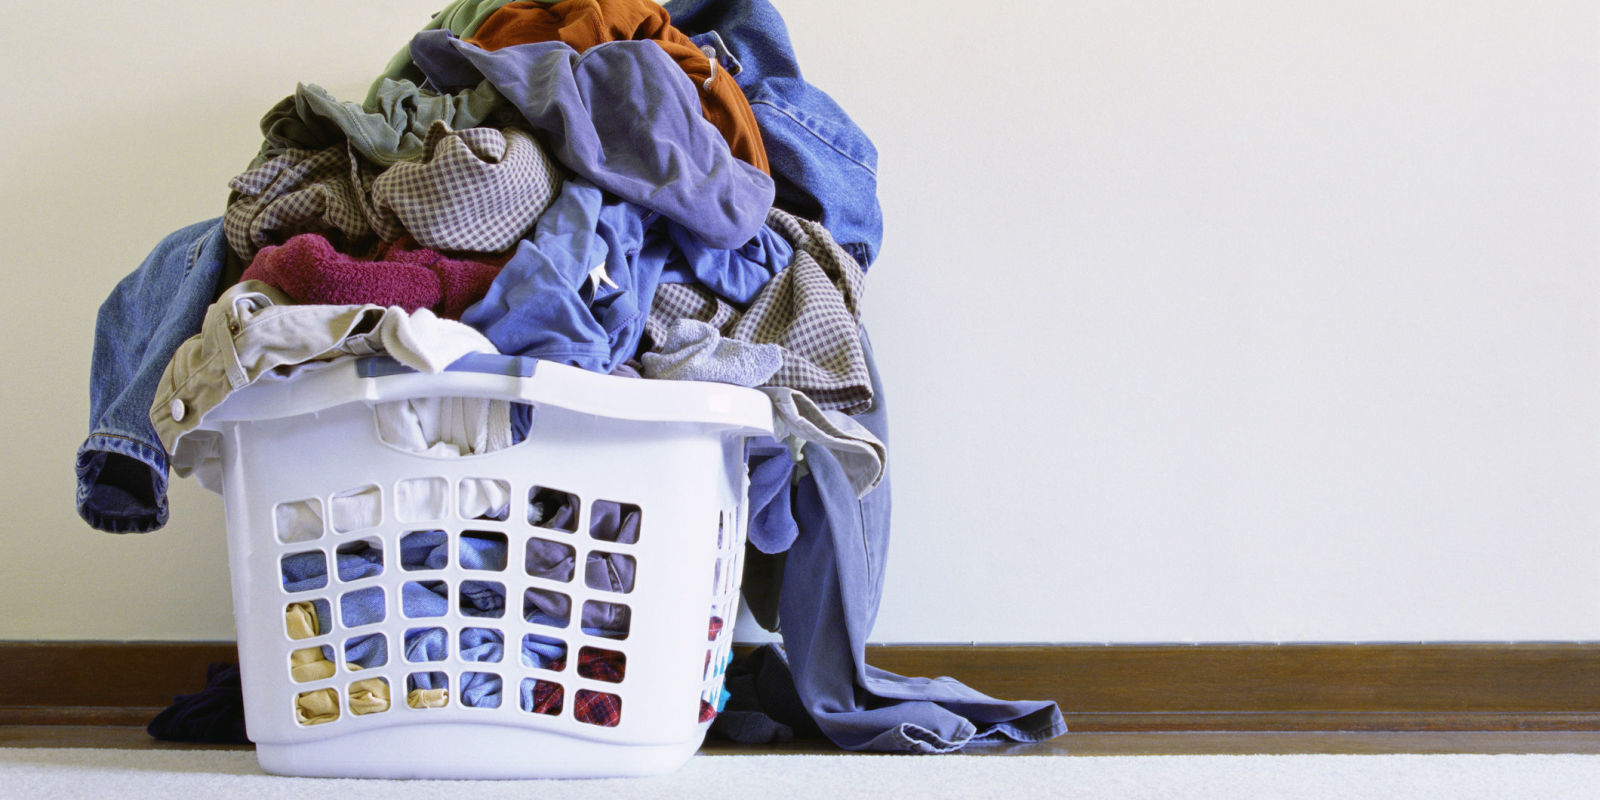 Reasons To Use A Laundry Service